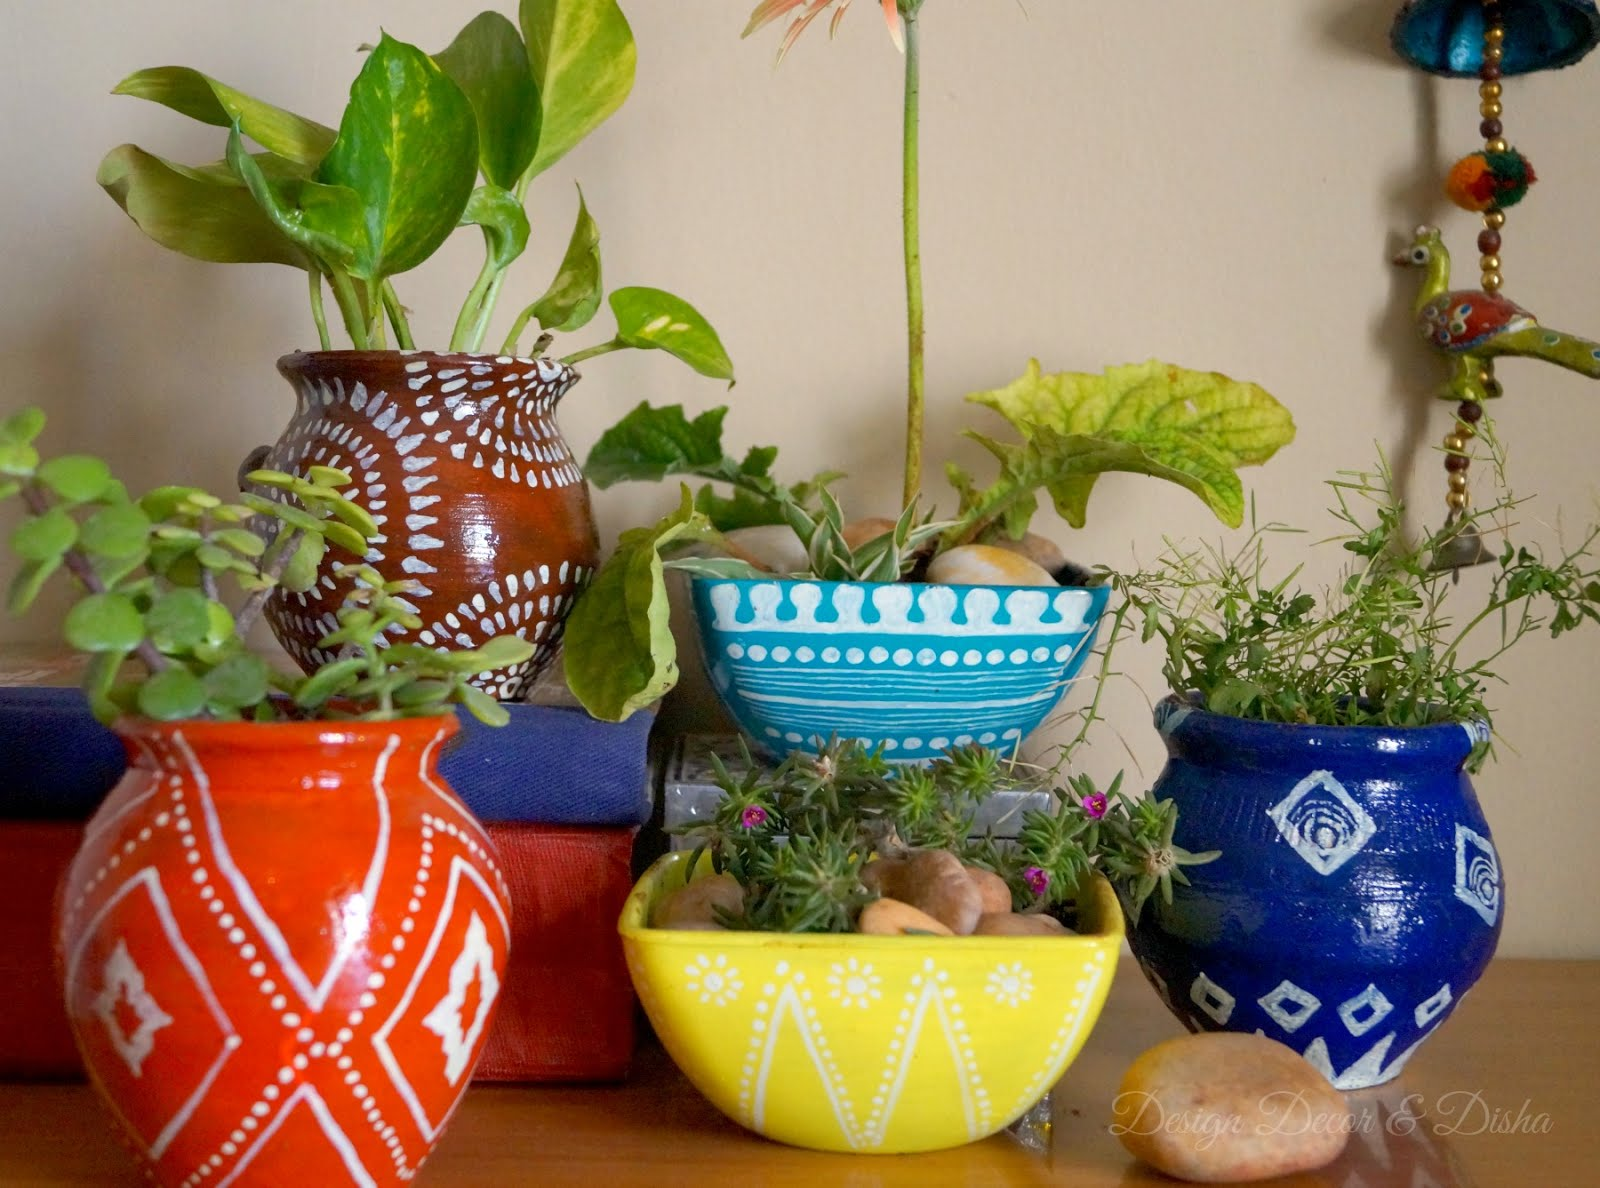 Design decor disha an indian design decor blog for Design patterns for pot painting